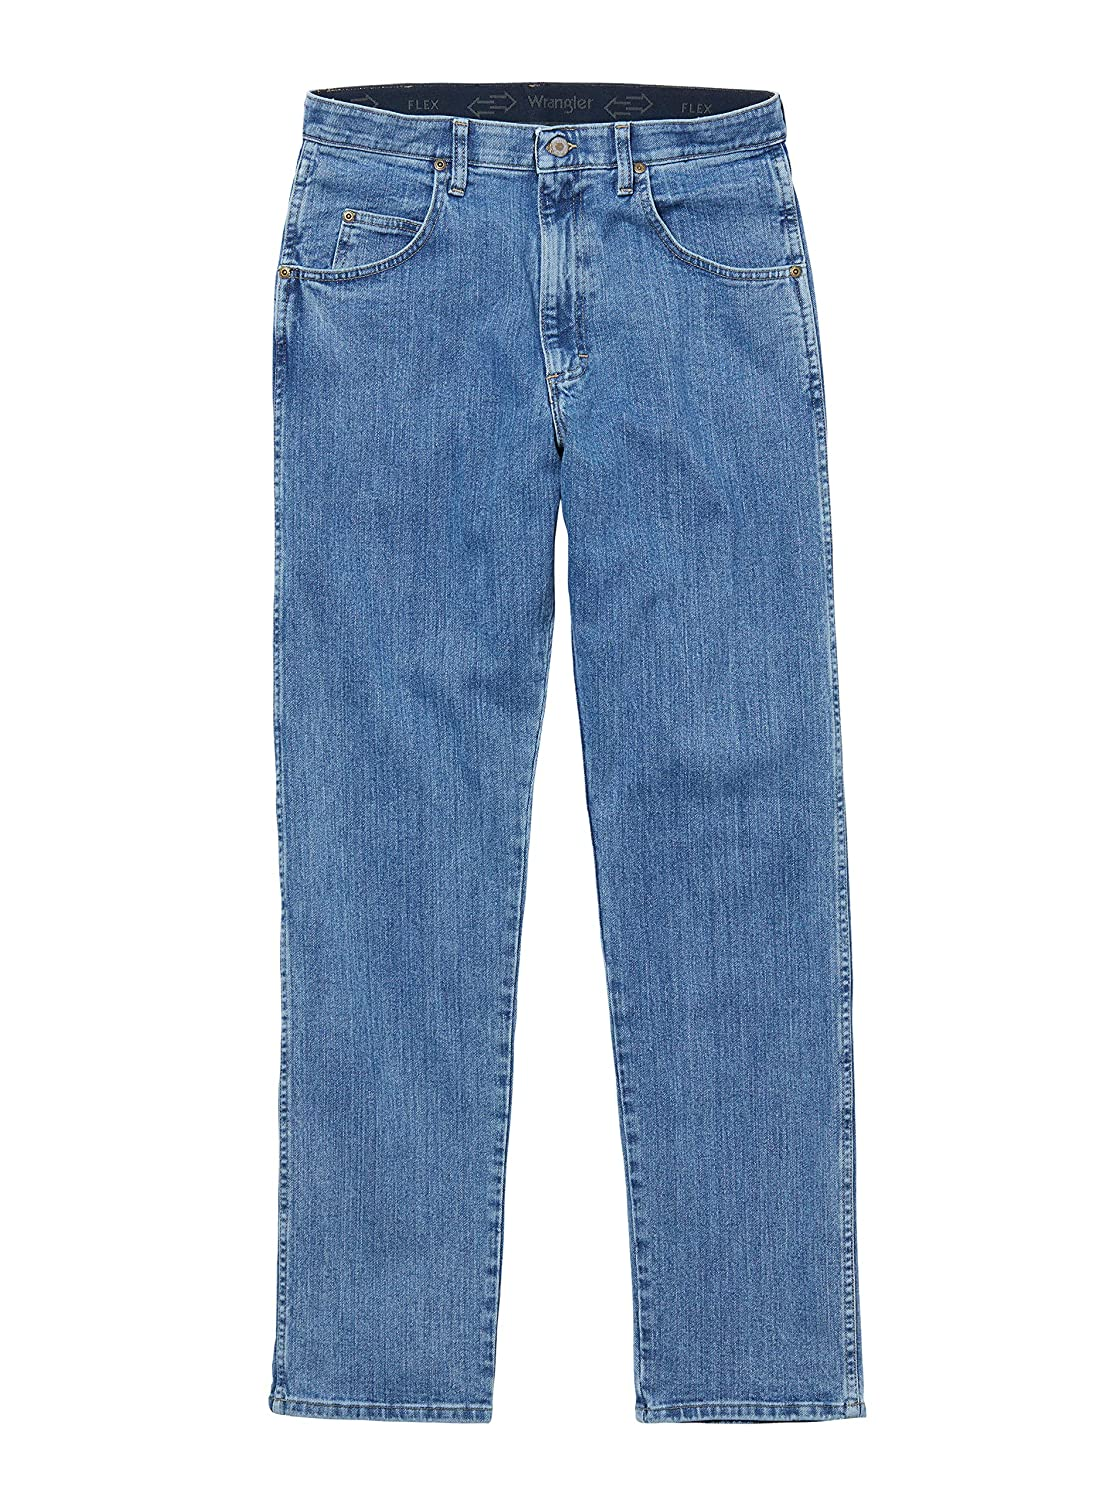 Light Stone Wrangler Mens Performance Series Relaxed Fit Jeans